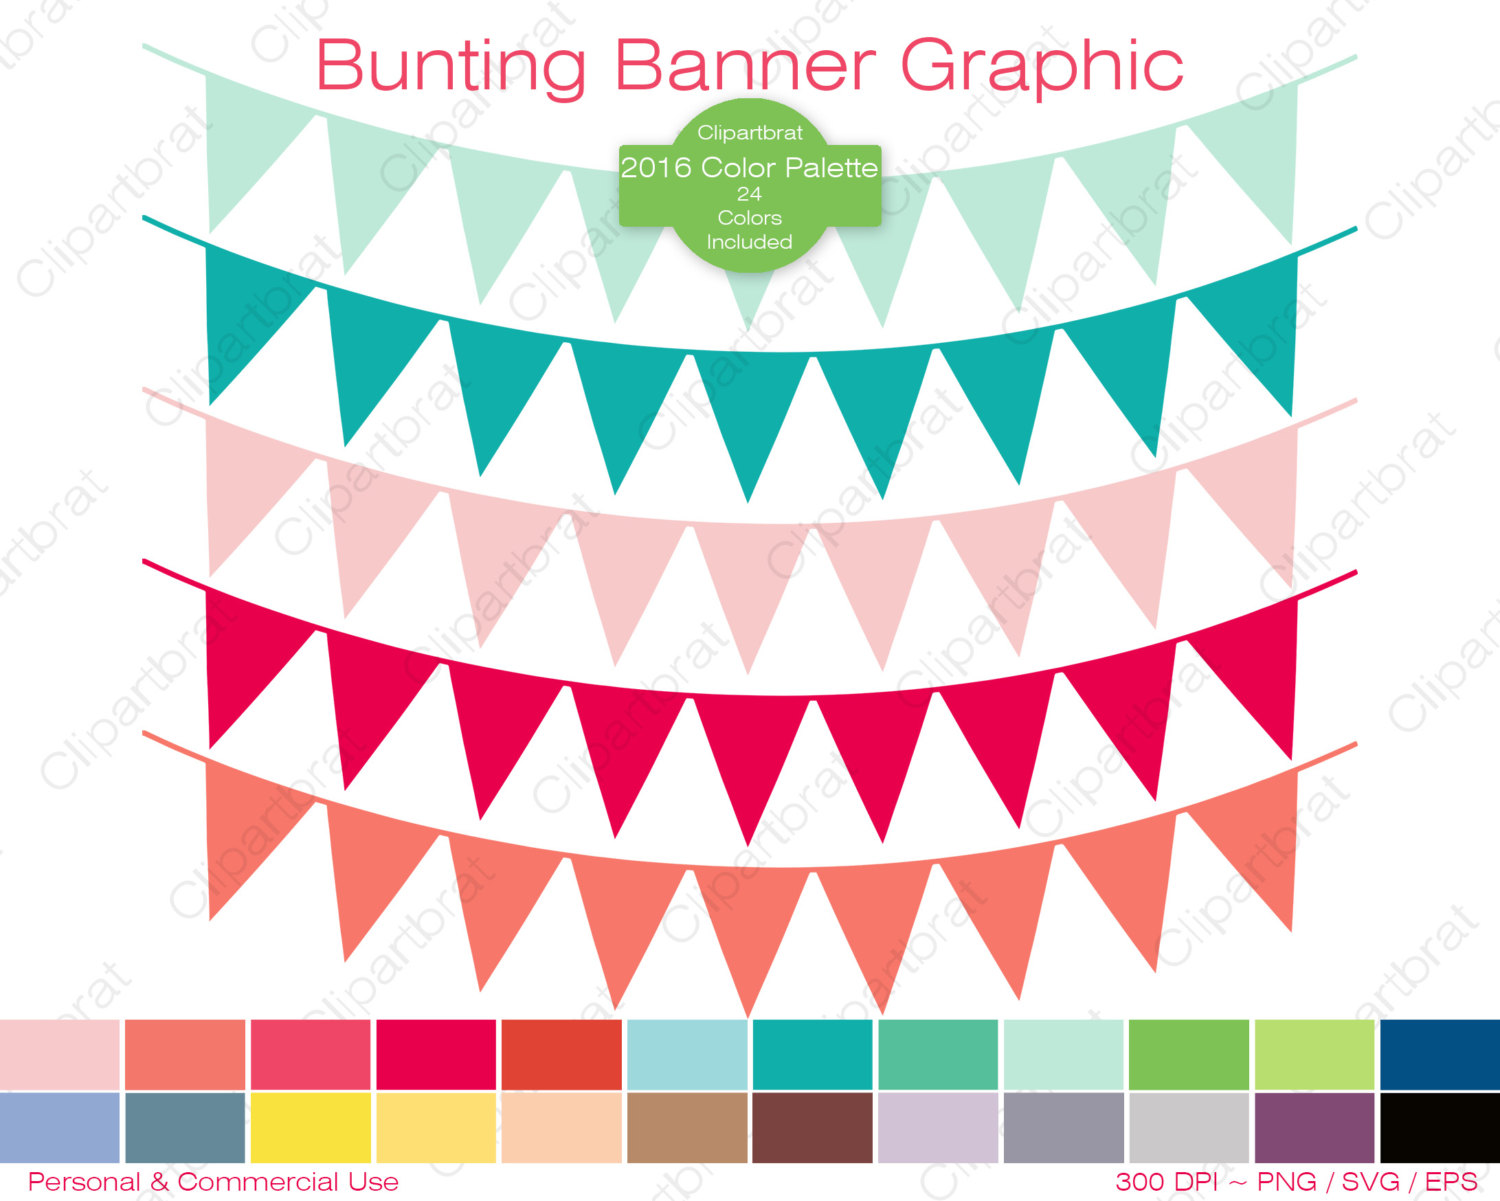 BUNTING BANNER Clipart Commercial Use Clipart Pennant Flag Graphic.